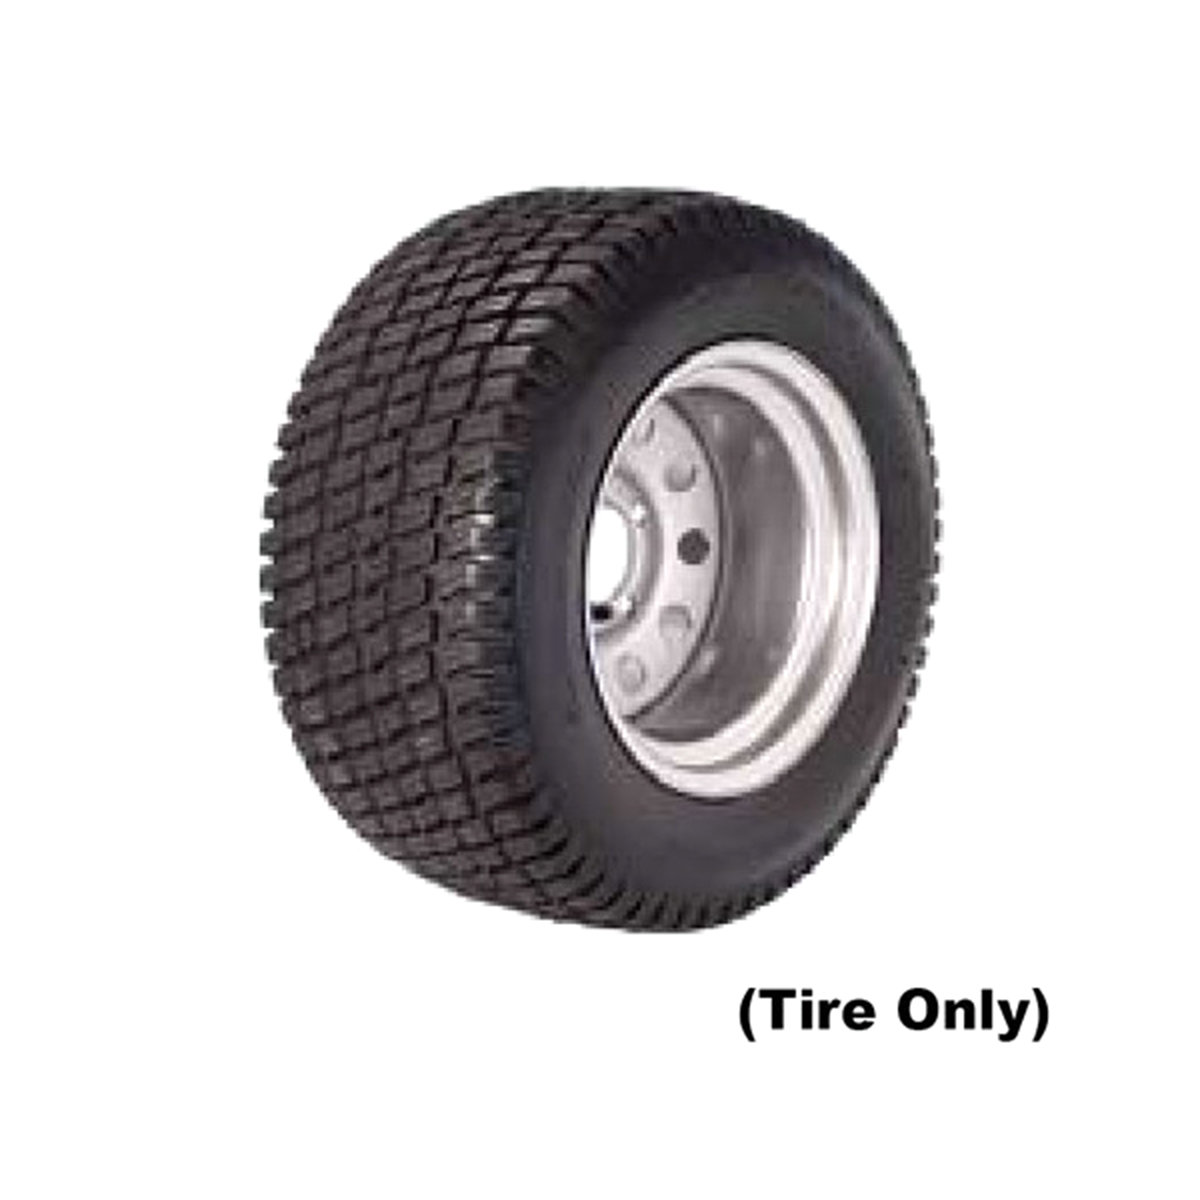 400372 Dixie Chopper Turf Master Tire 22x10.5x12